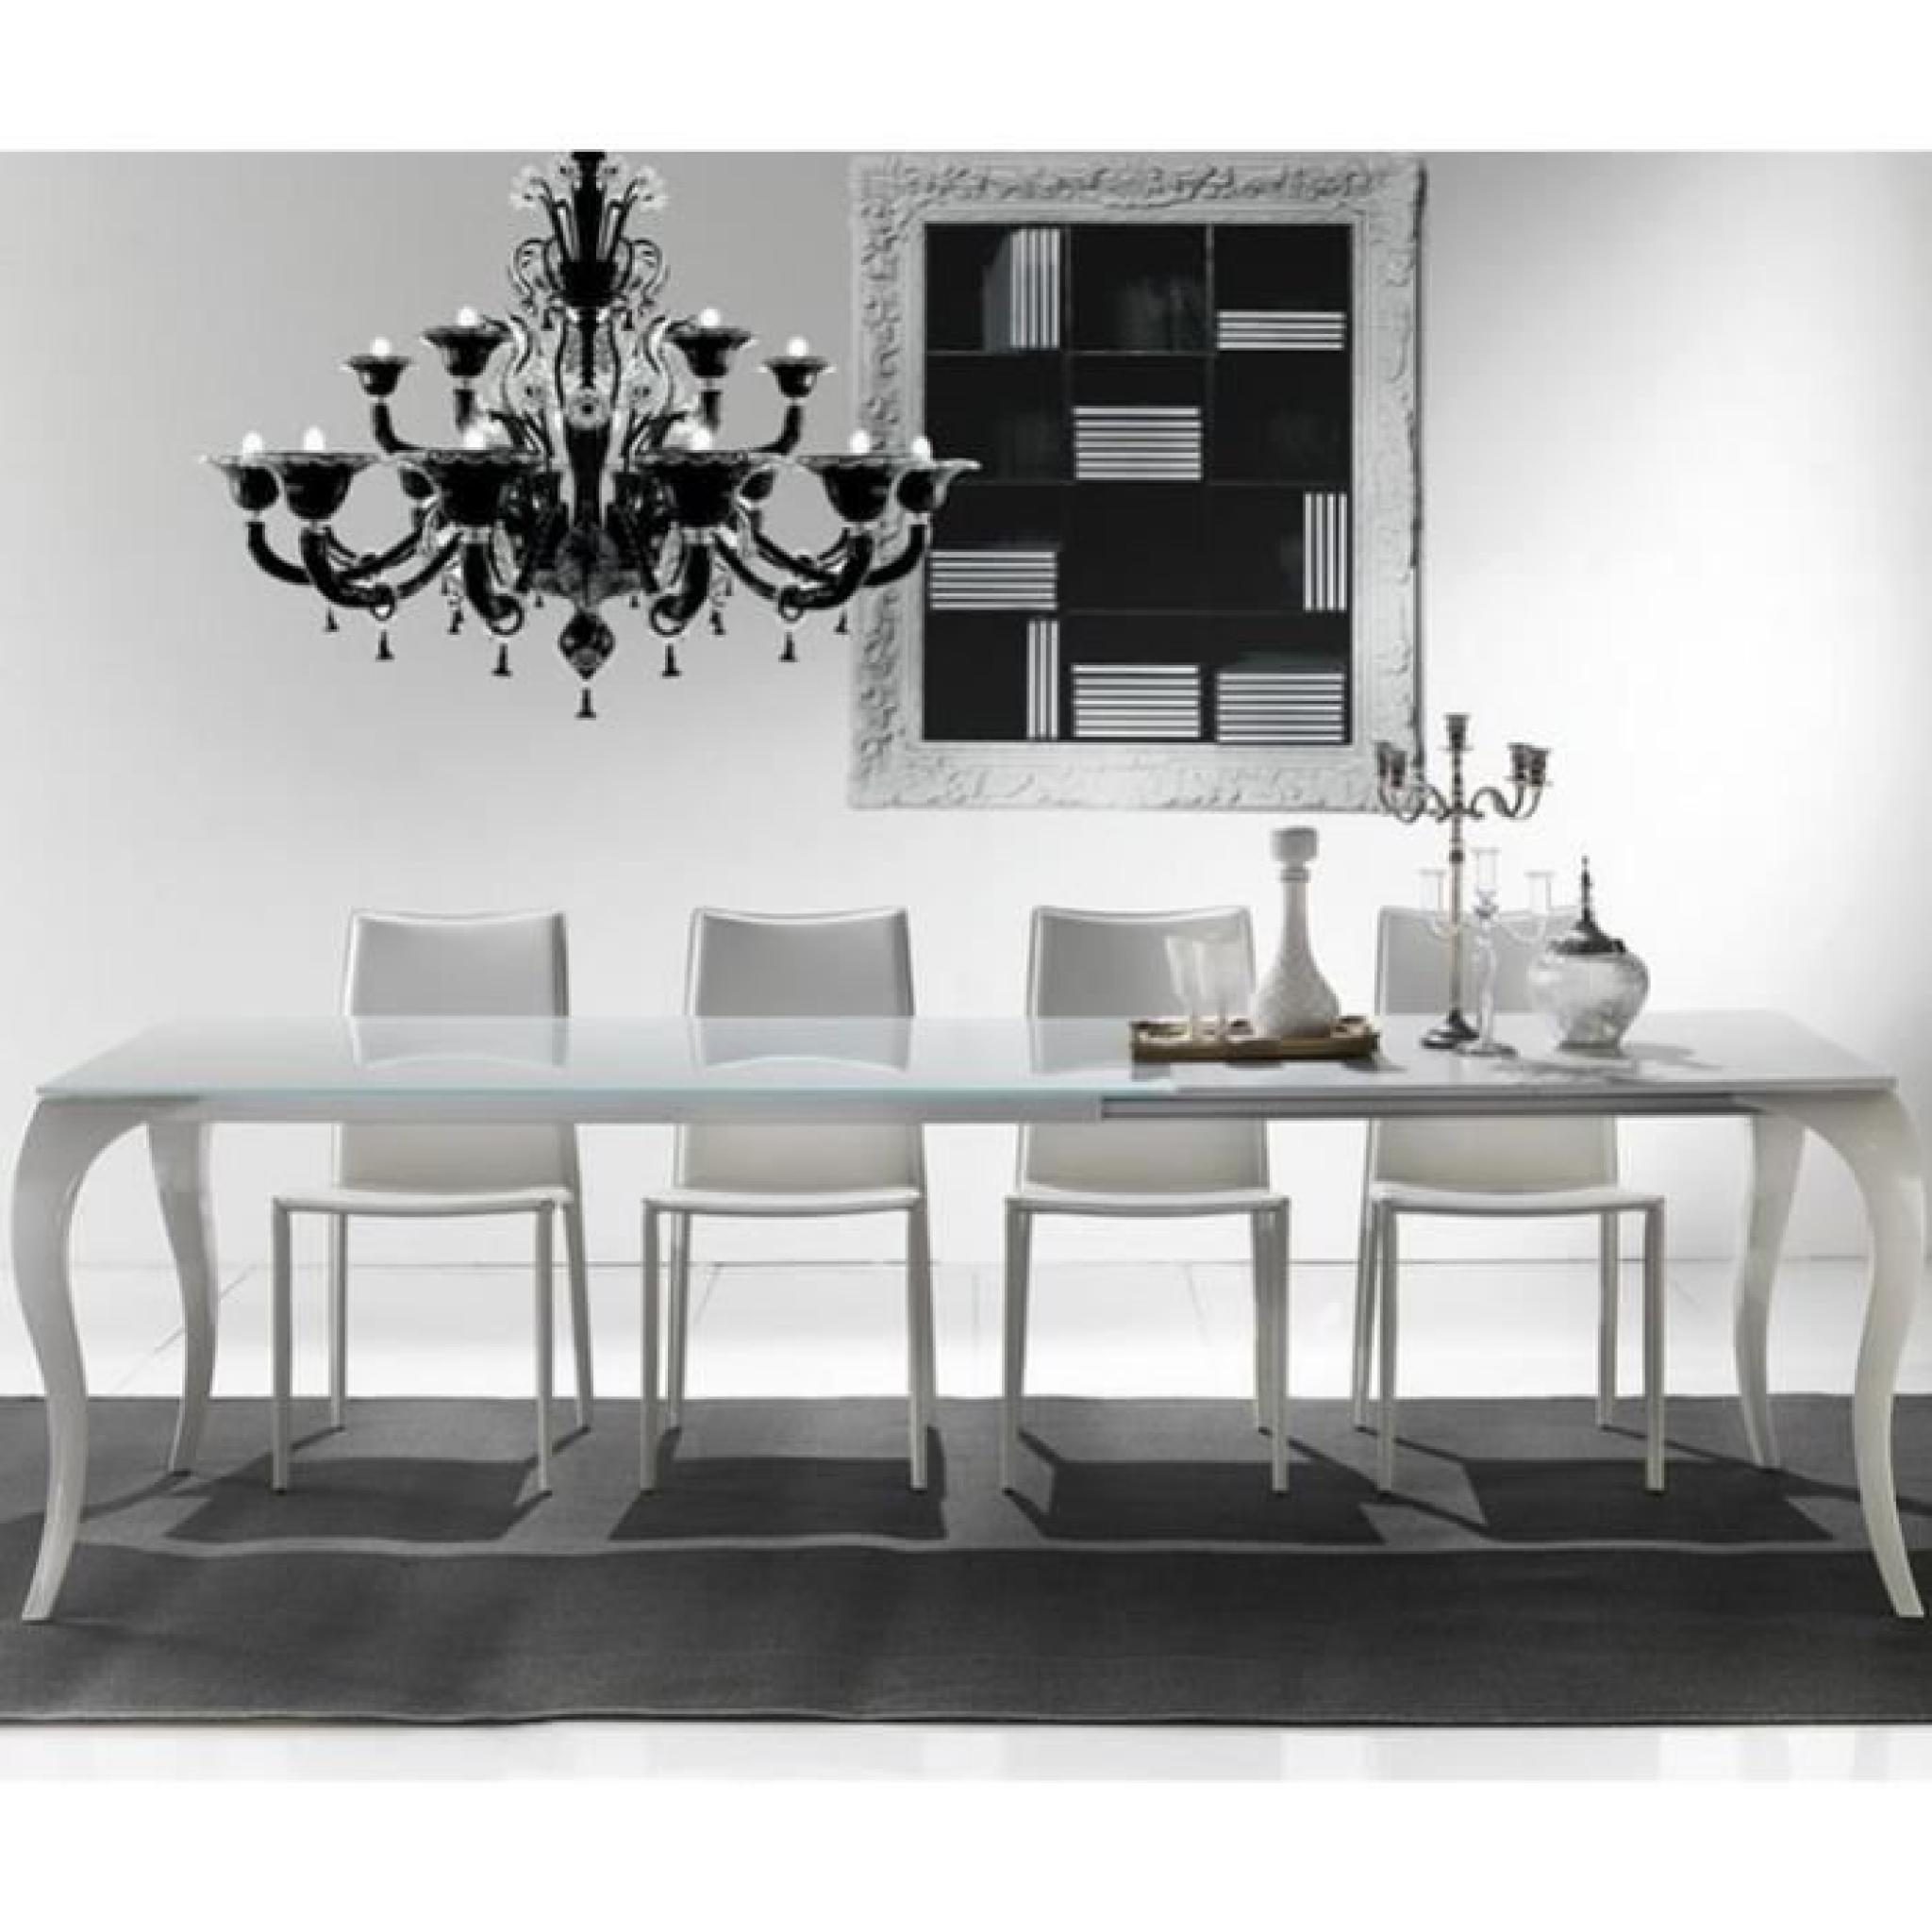 table repas extensible paris en verre et plexiglas achat vente table salle a manger pas cher. Black Bedroom Furniture Sets. Home Design Ideas